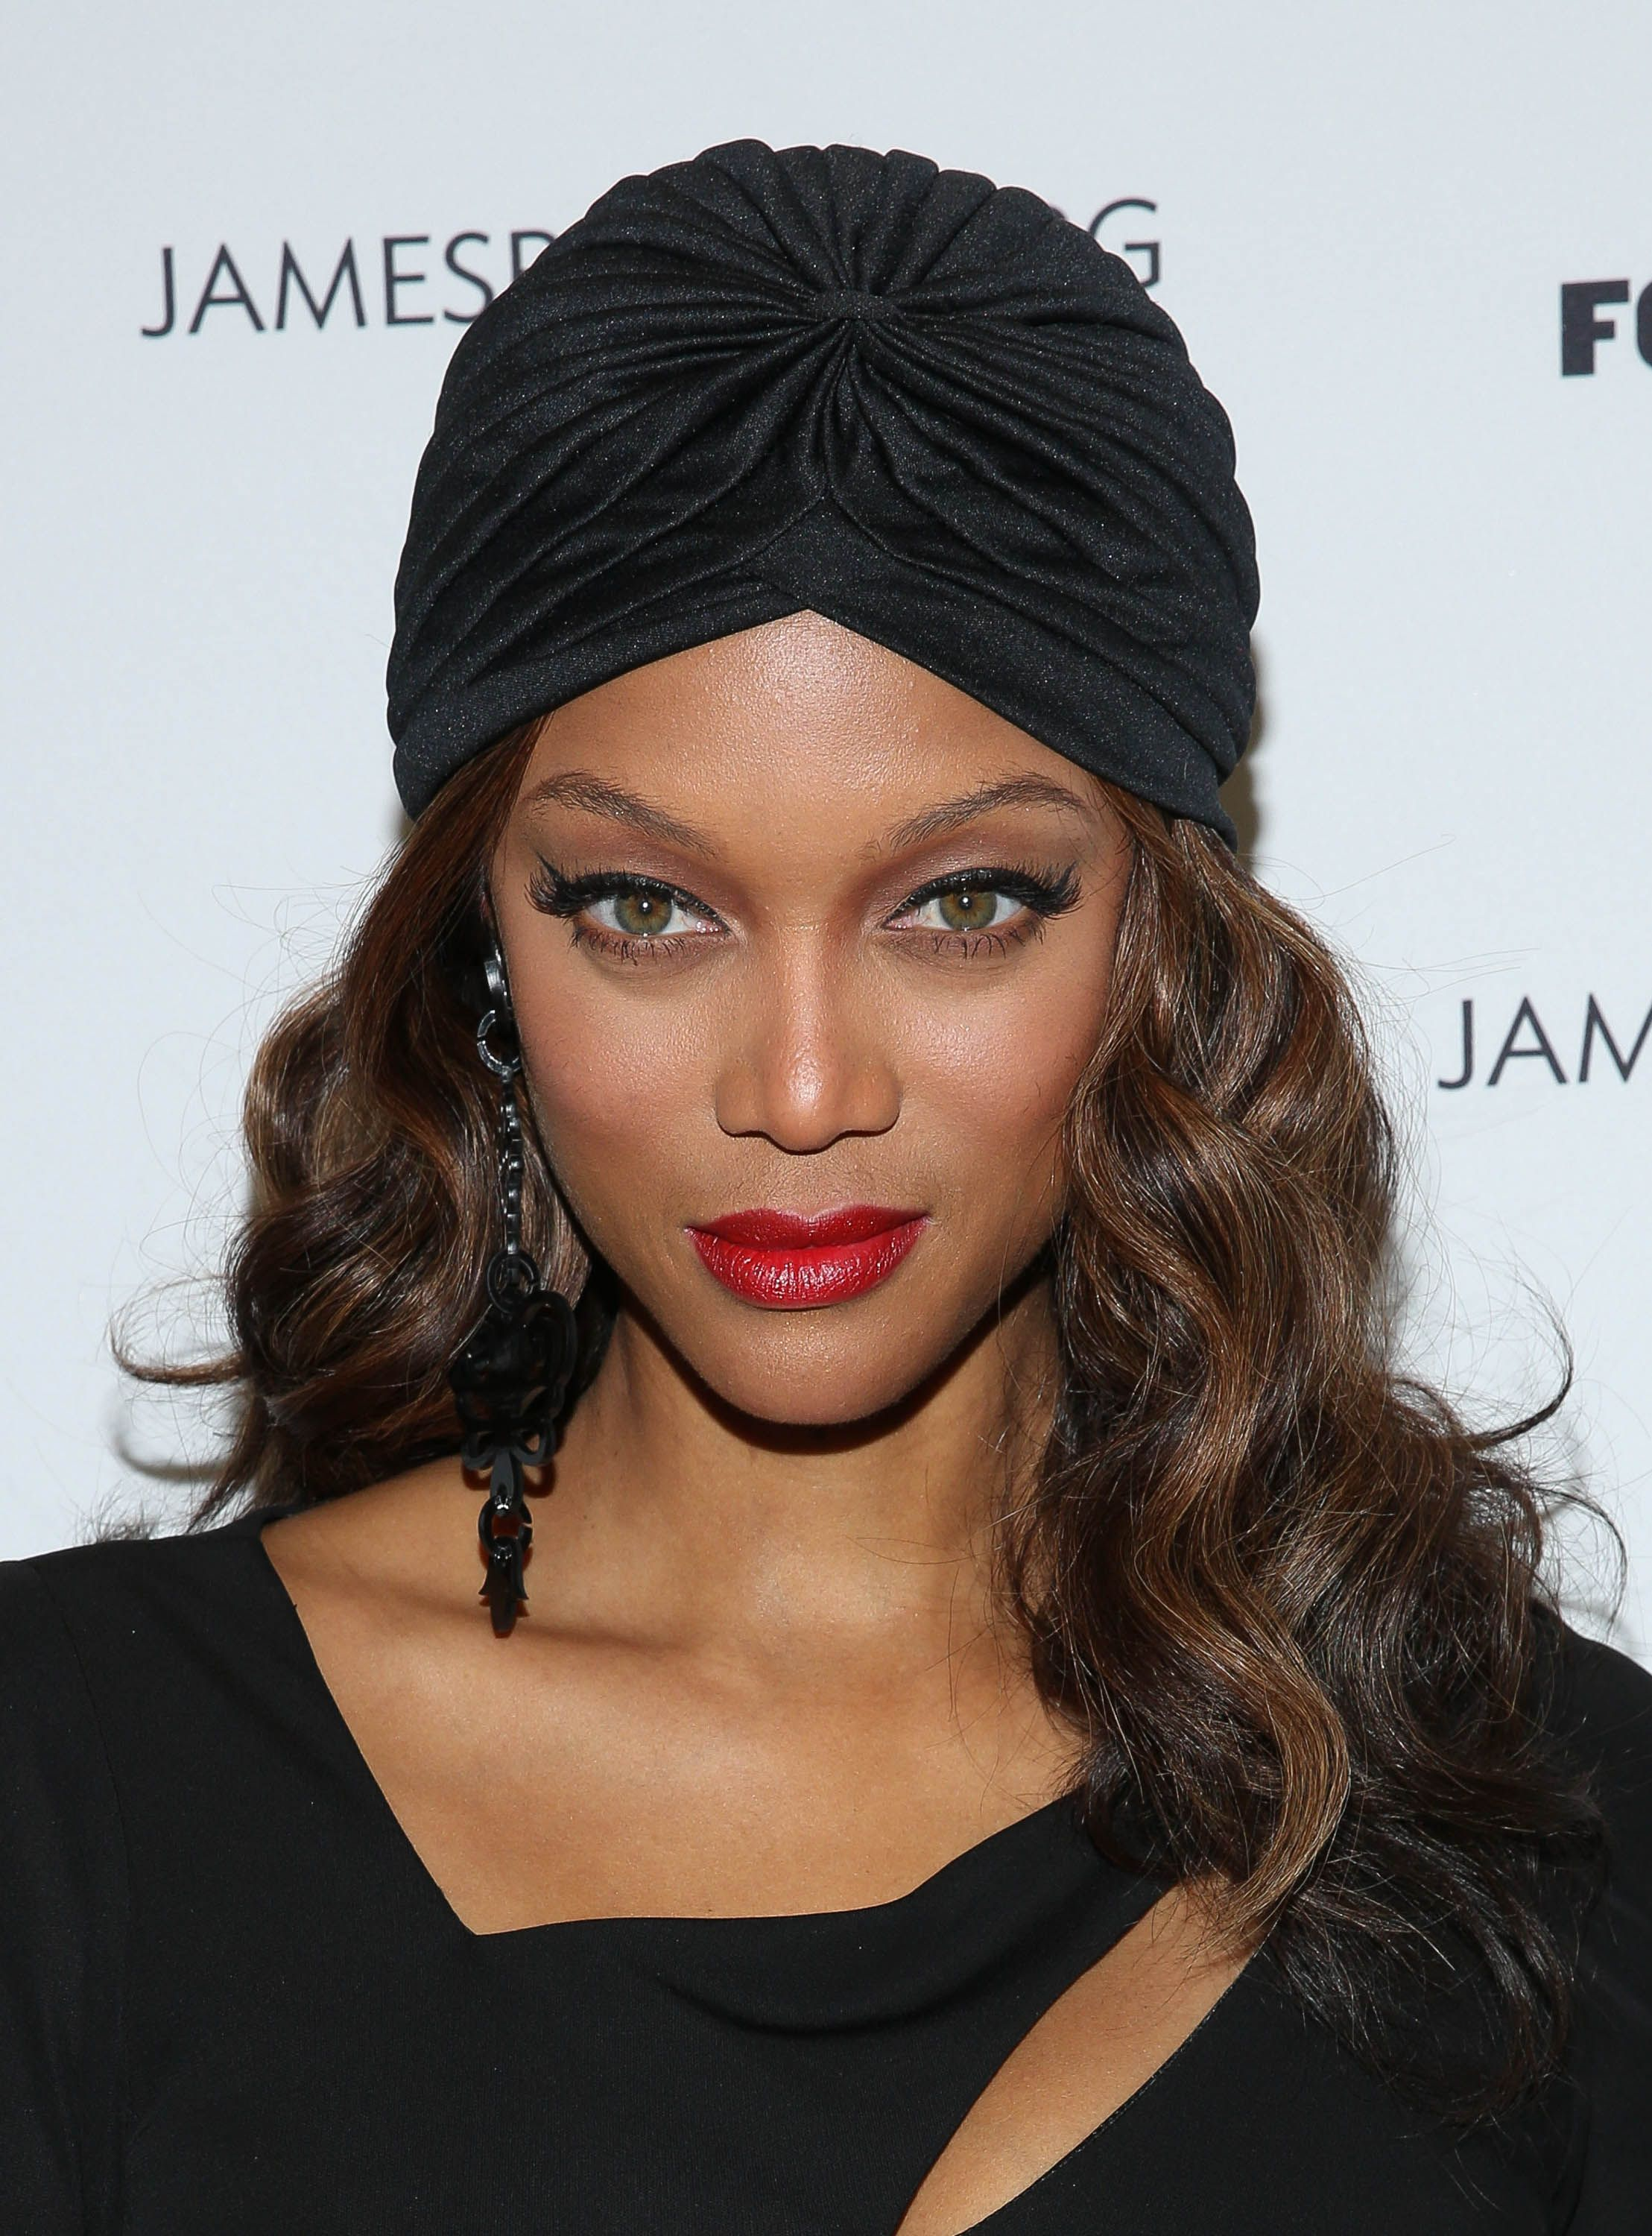 Tyra Banks The supermodel and TV producer holds an